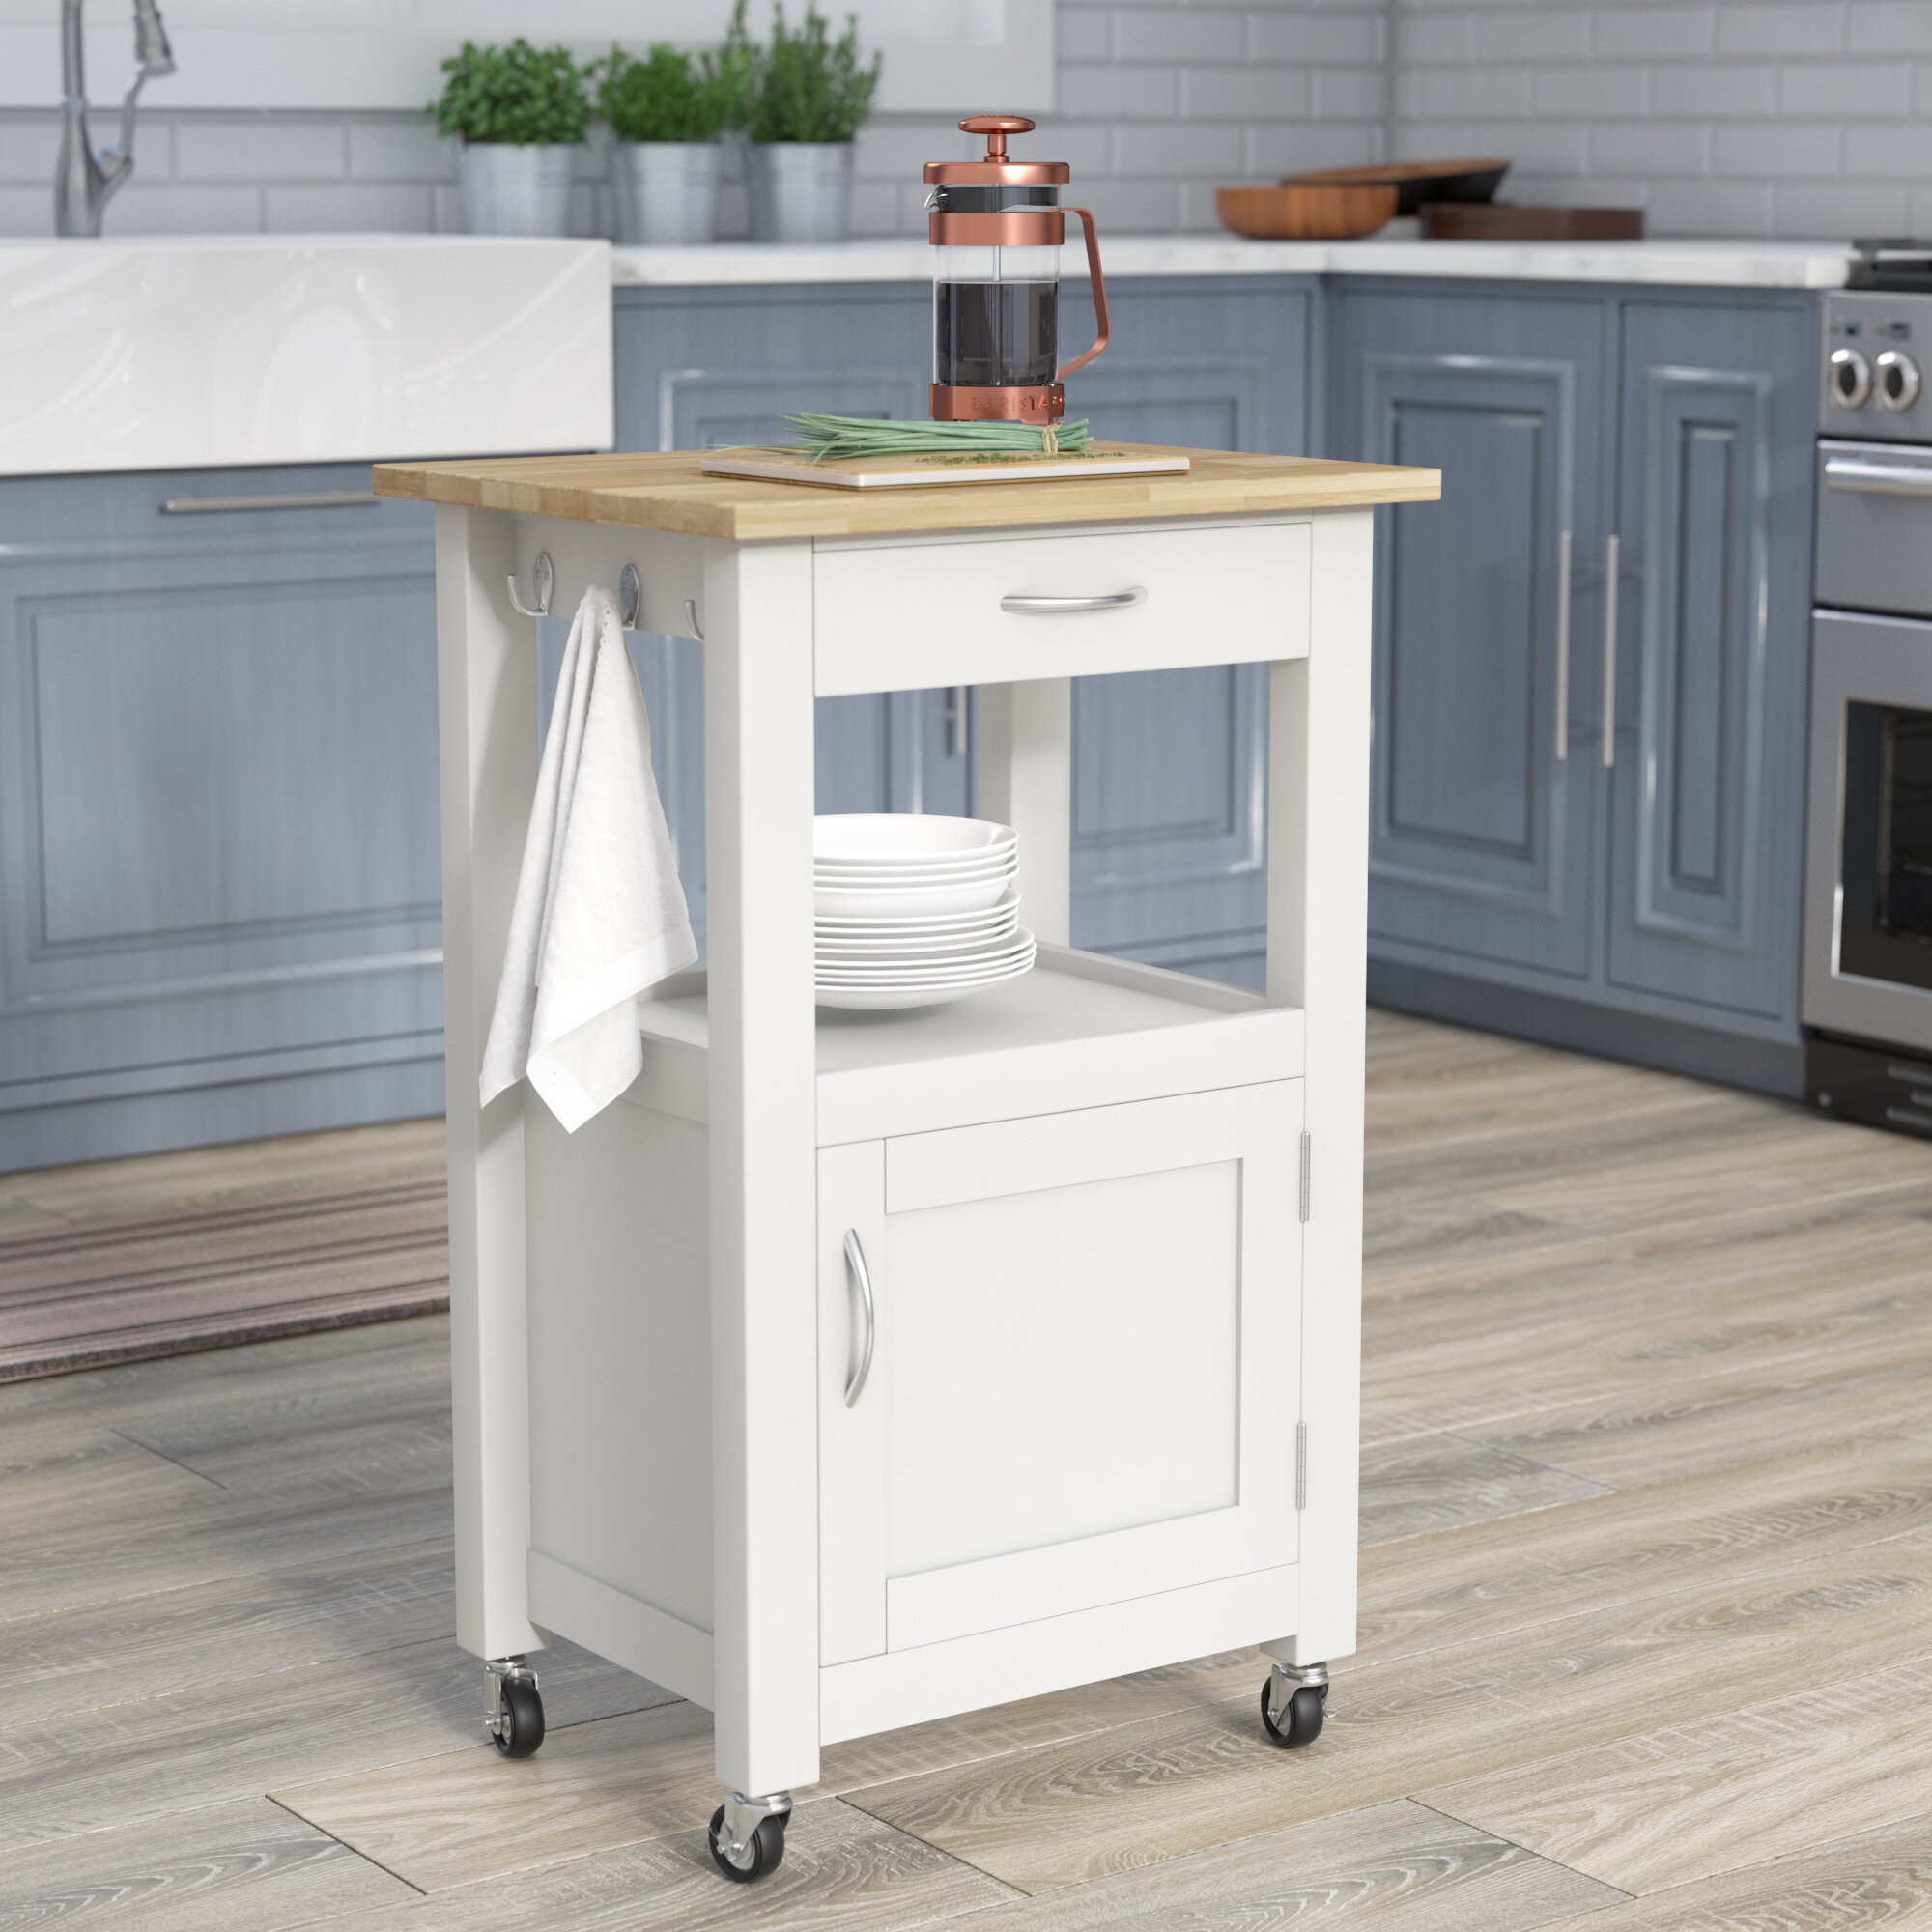 Charlton Home Jordan Kitchen Island Cart with Natural Wood Top ...